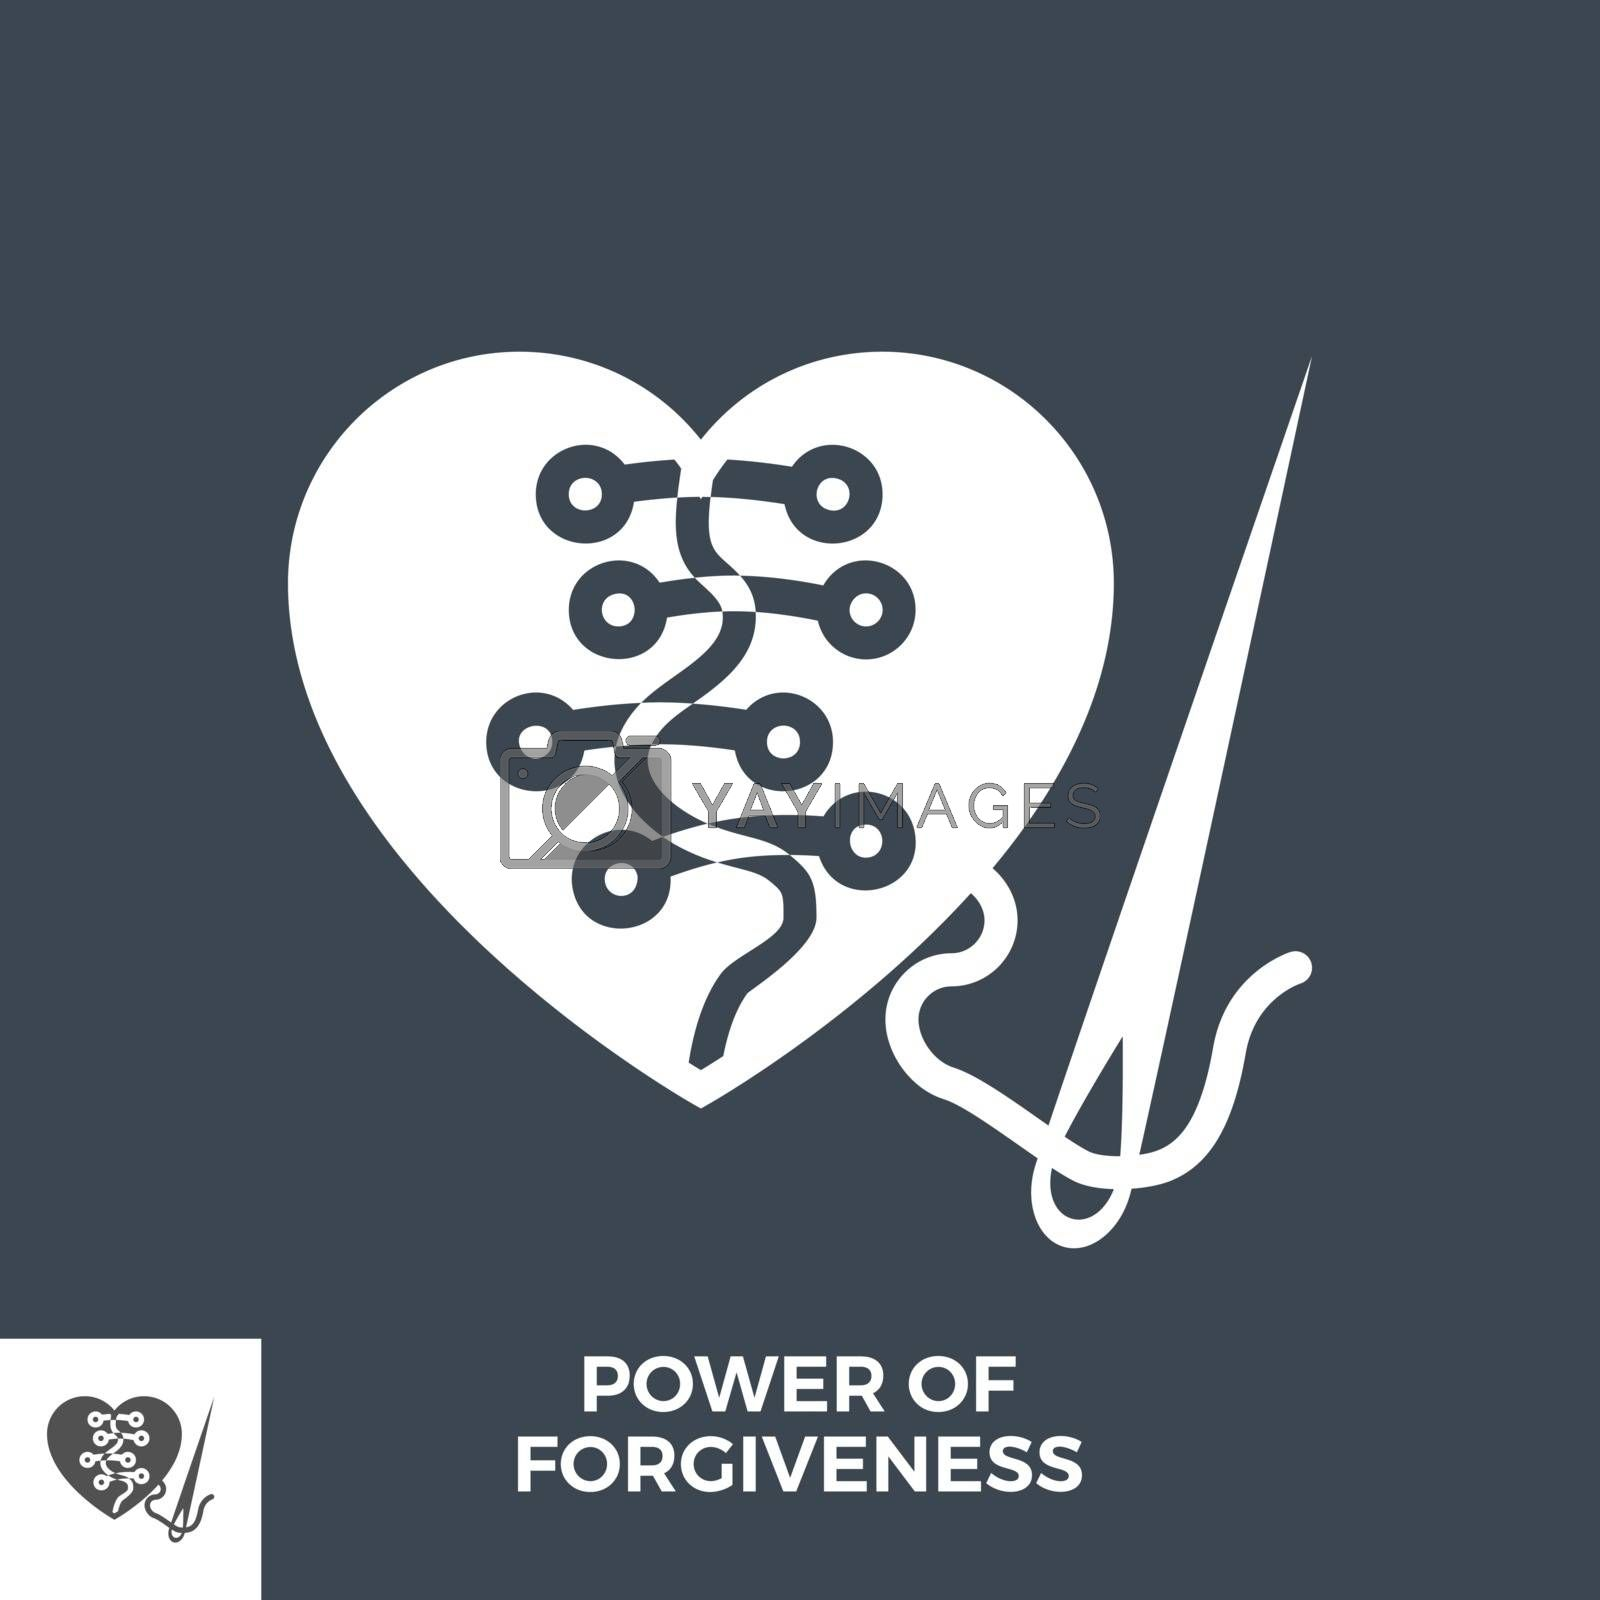 Power of Forgiveness Glyph Vector Icon Isolated on the Black Background.